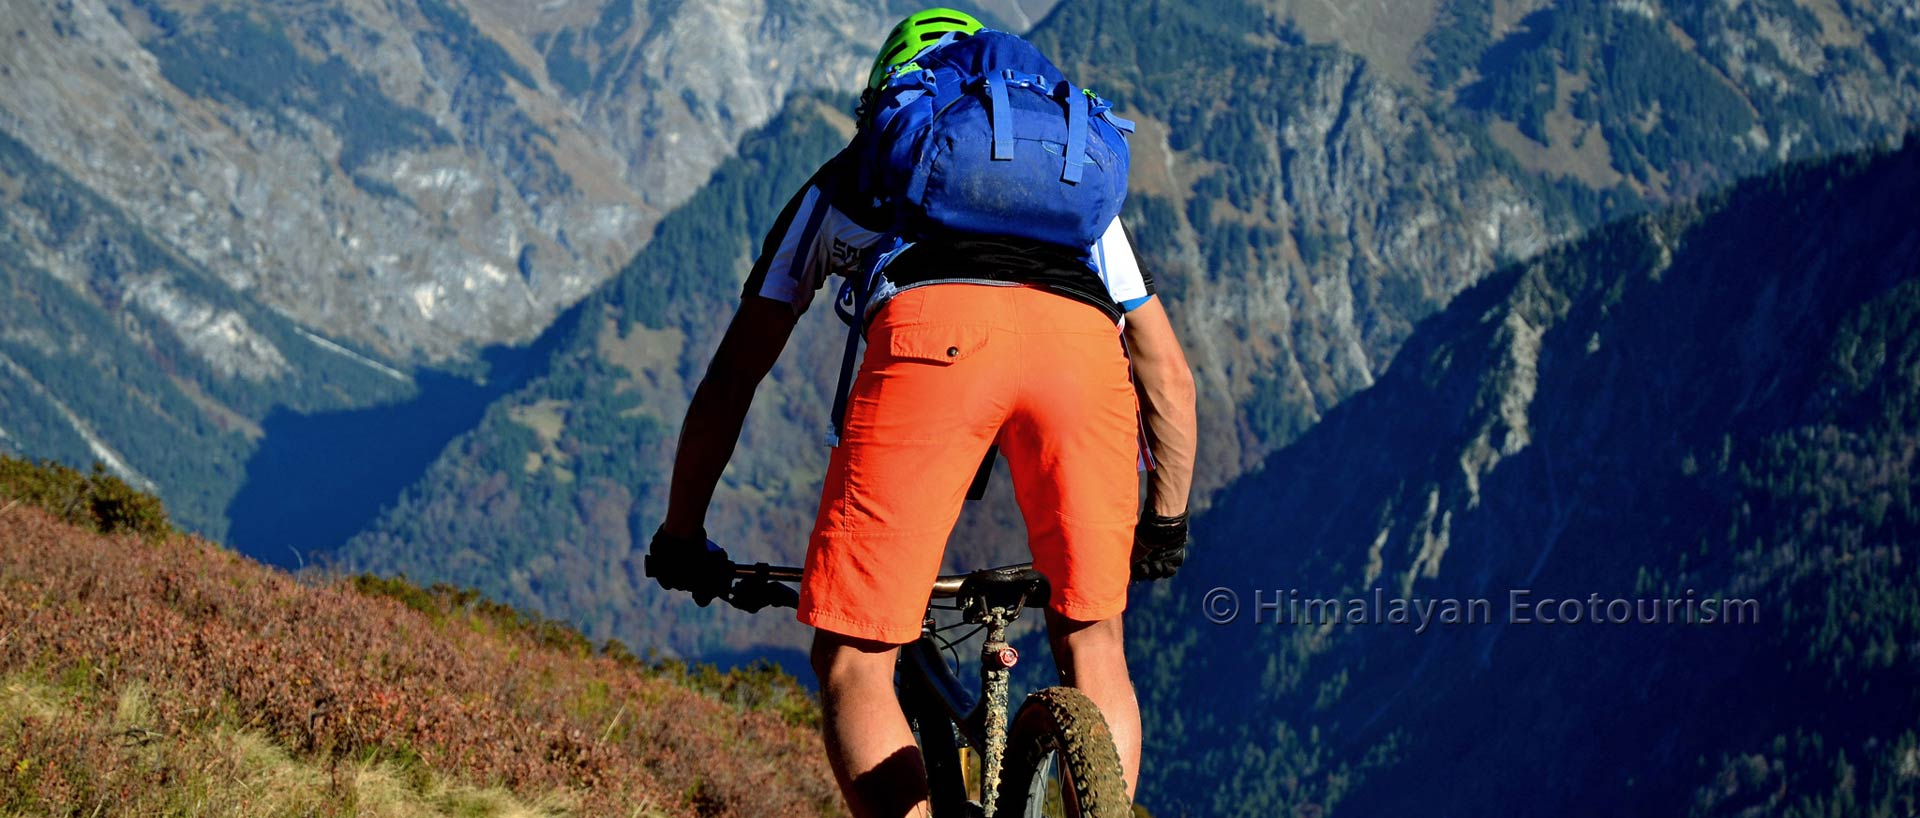 Mountain biking in Himachal Pradesh